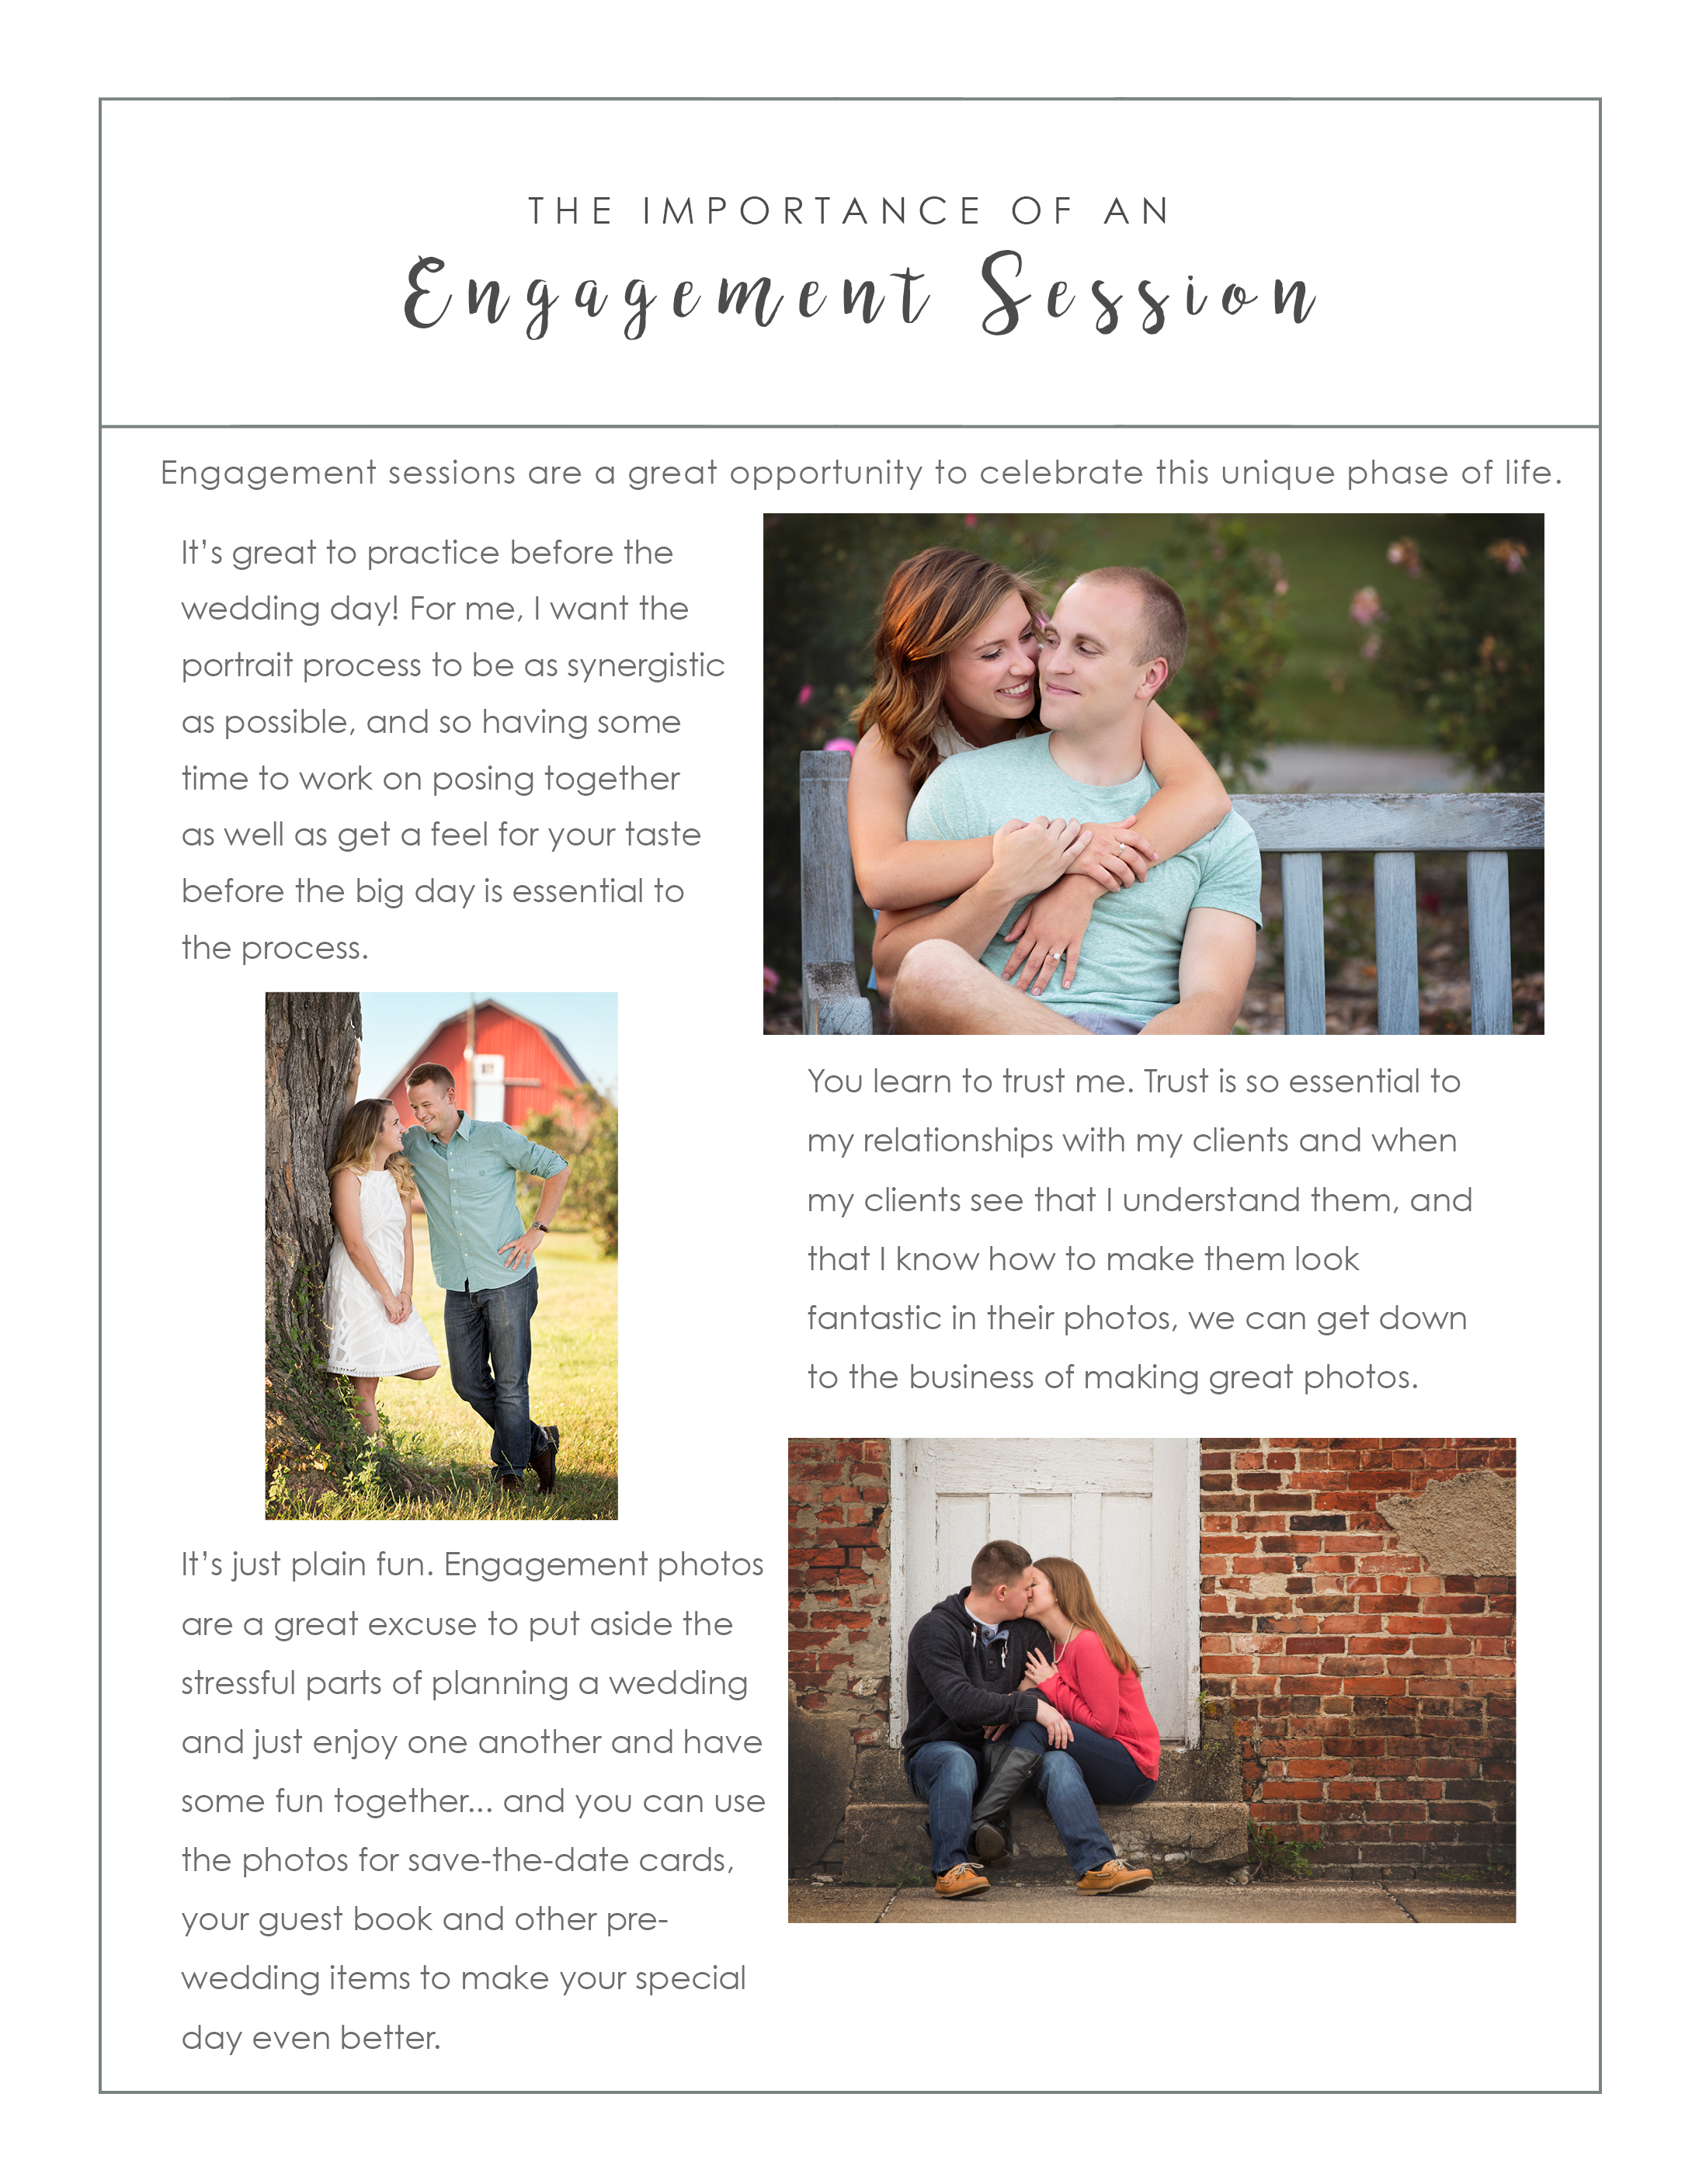 6-EngagementSession.jpg